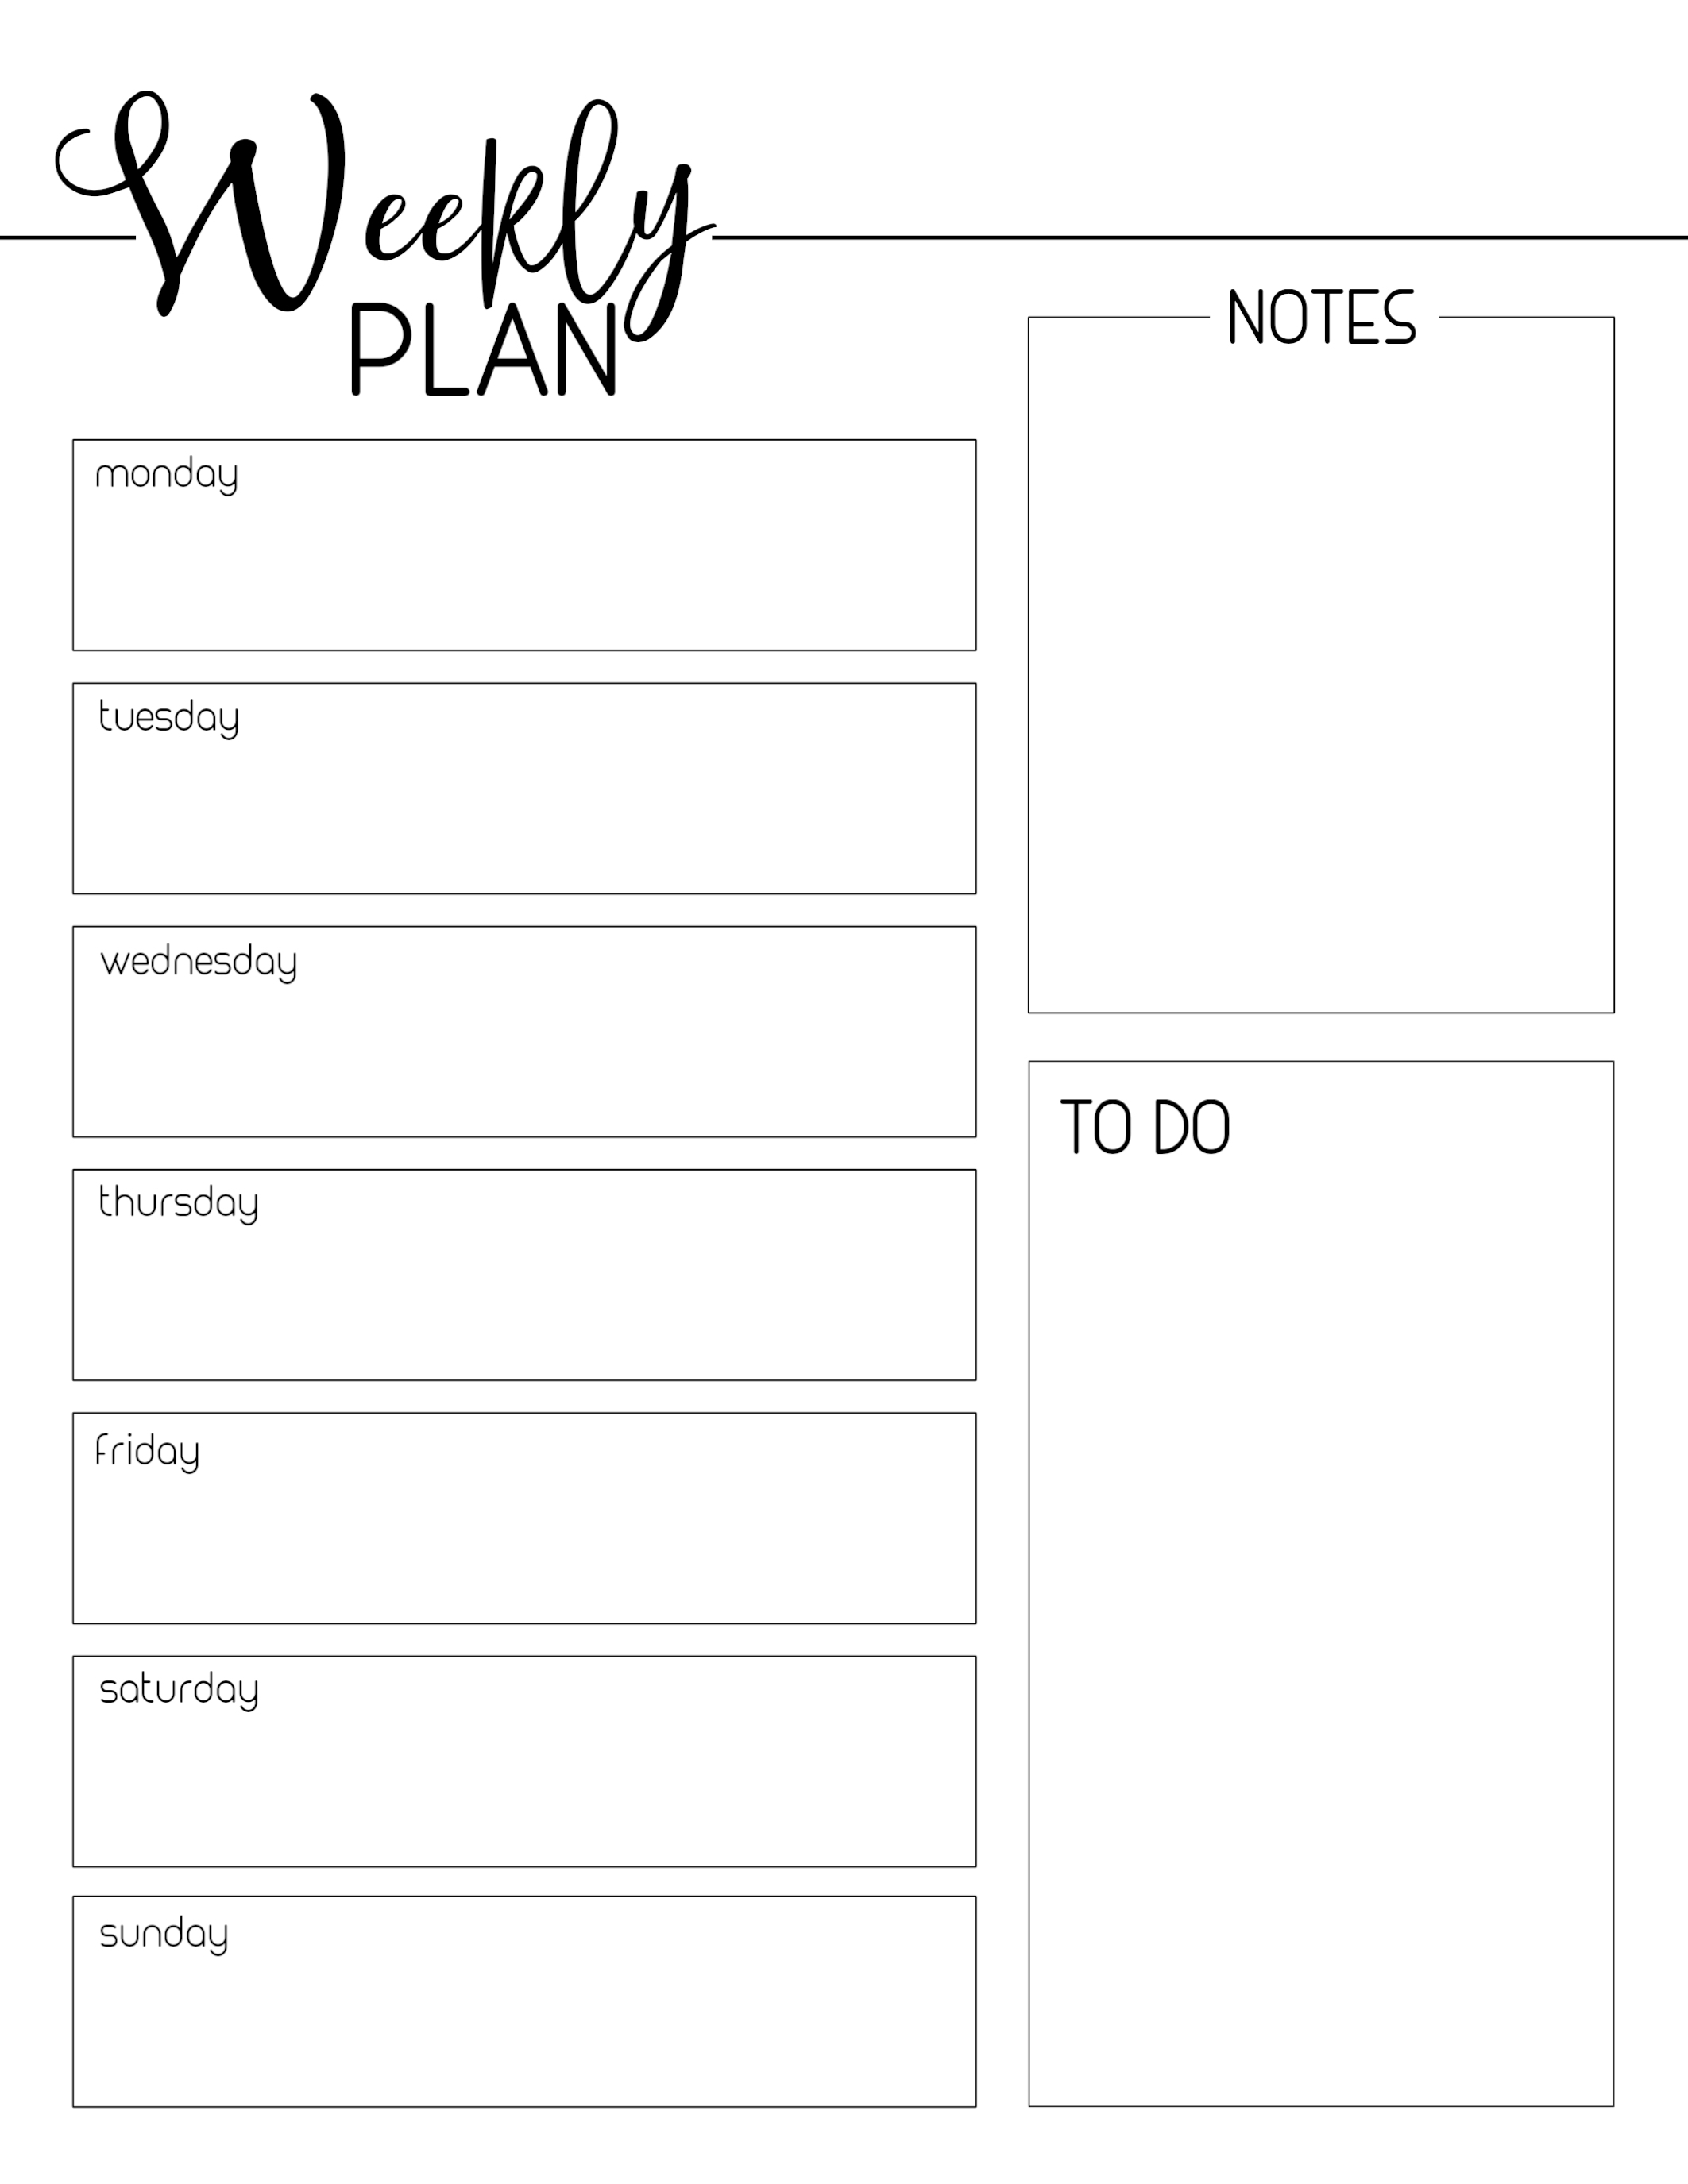 Free Printable Weekly Planner 2020 In Pdf, Word & Excel